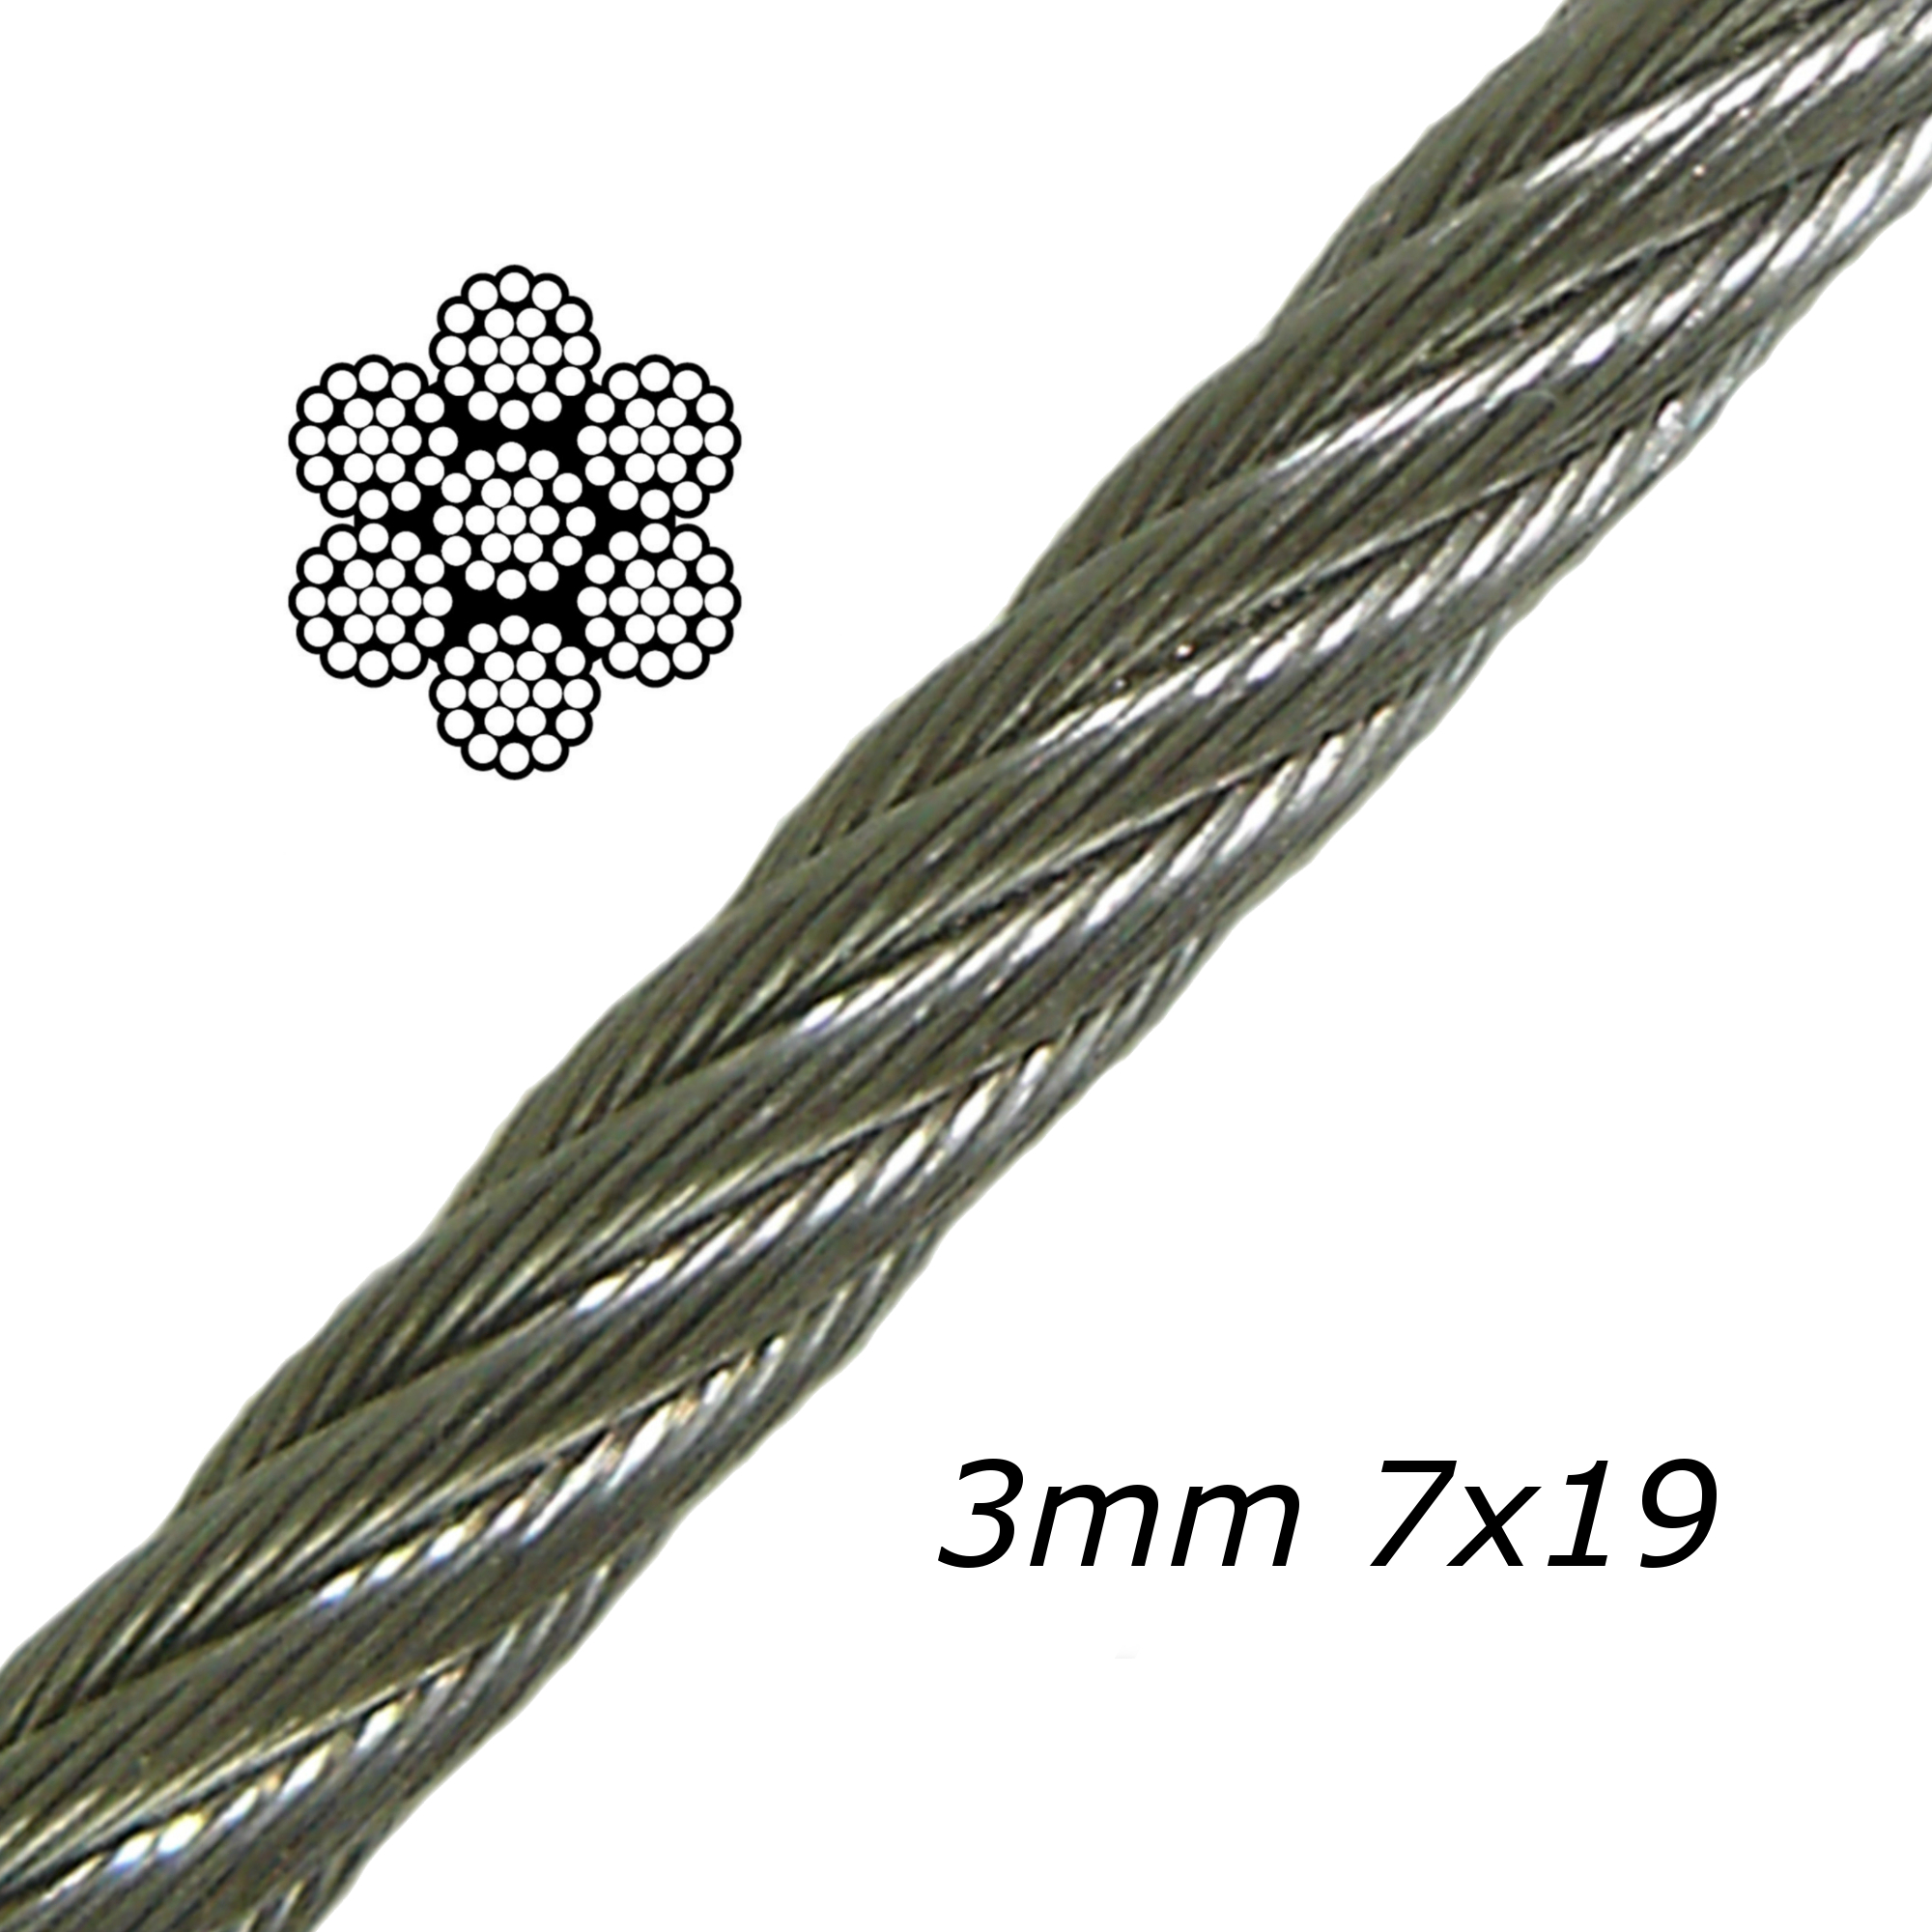 3mm Stainless Steel Cable 7x19